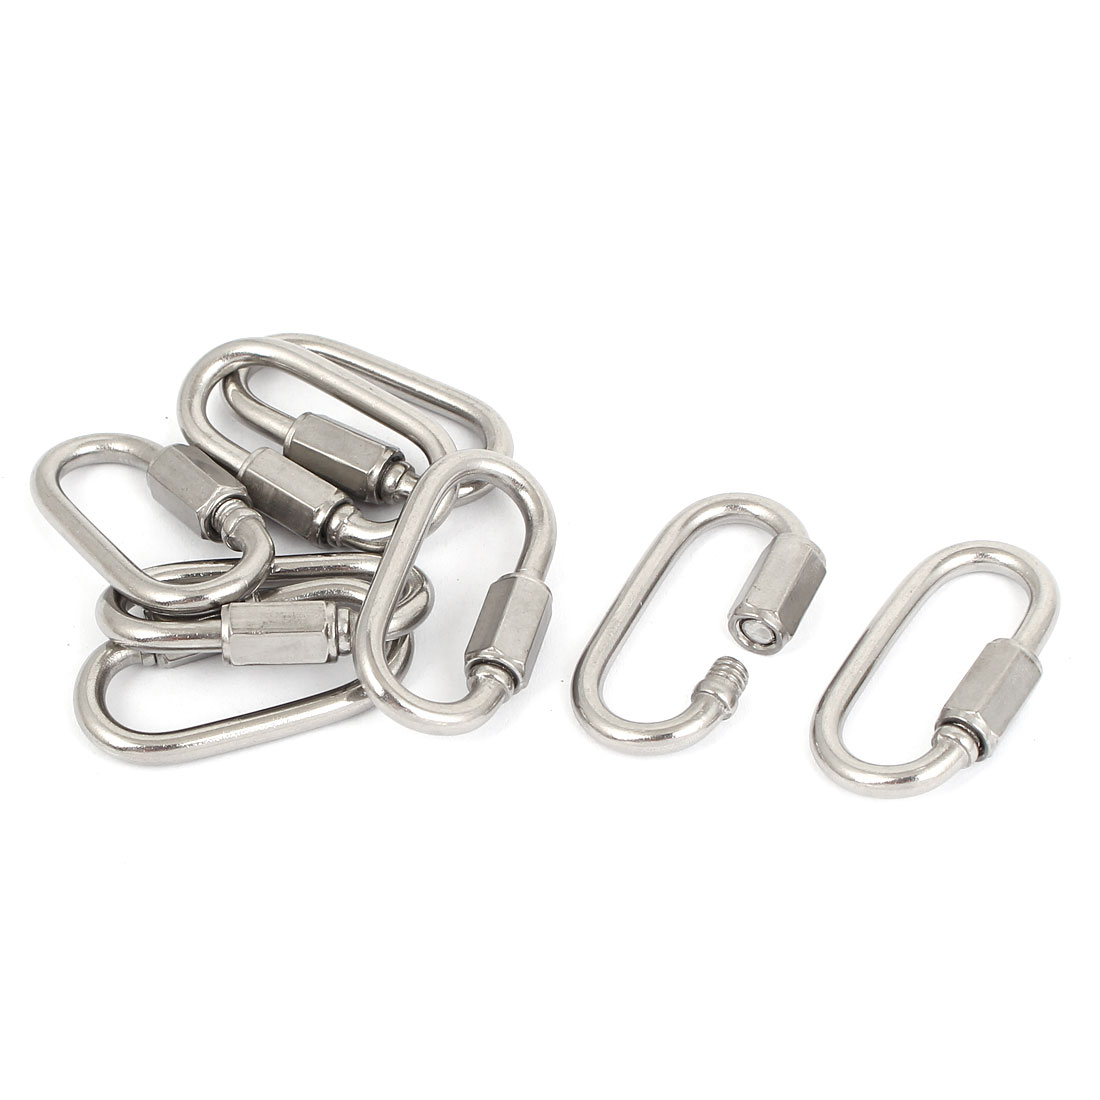 3.5mm Thickness Repair Part Stainless Steel Quick Link Chain Carabiners 8pcs